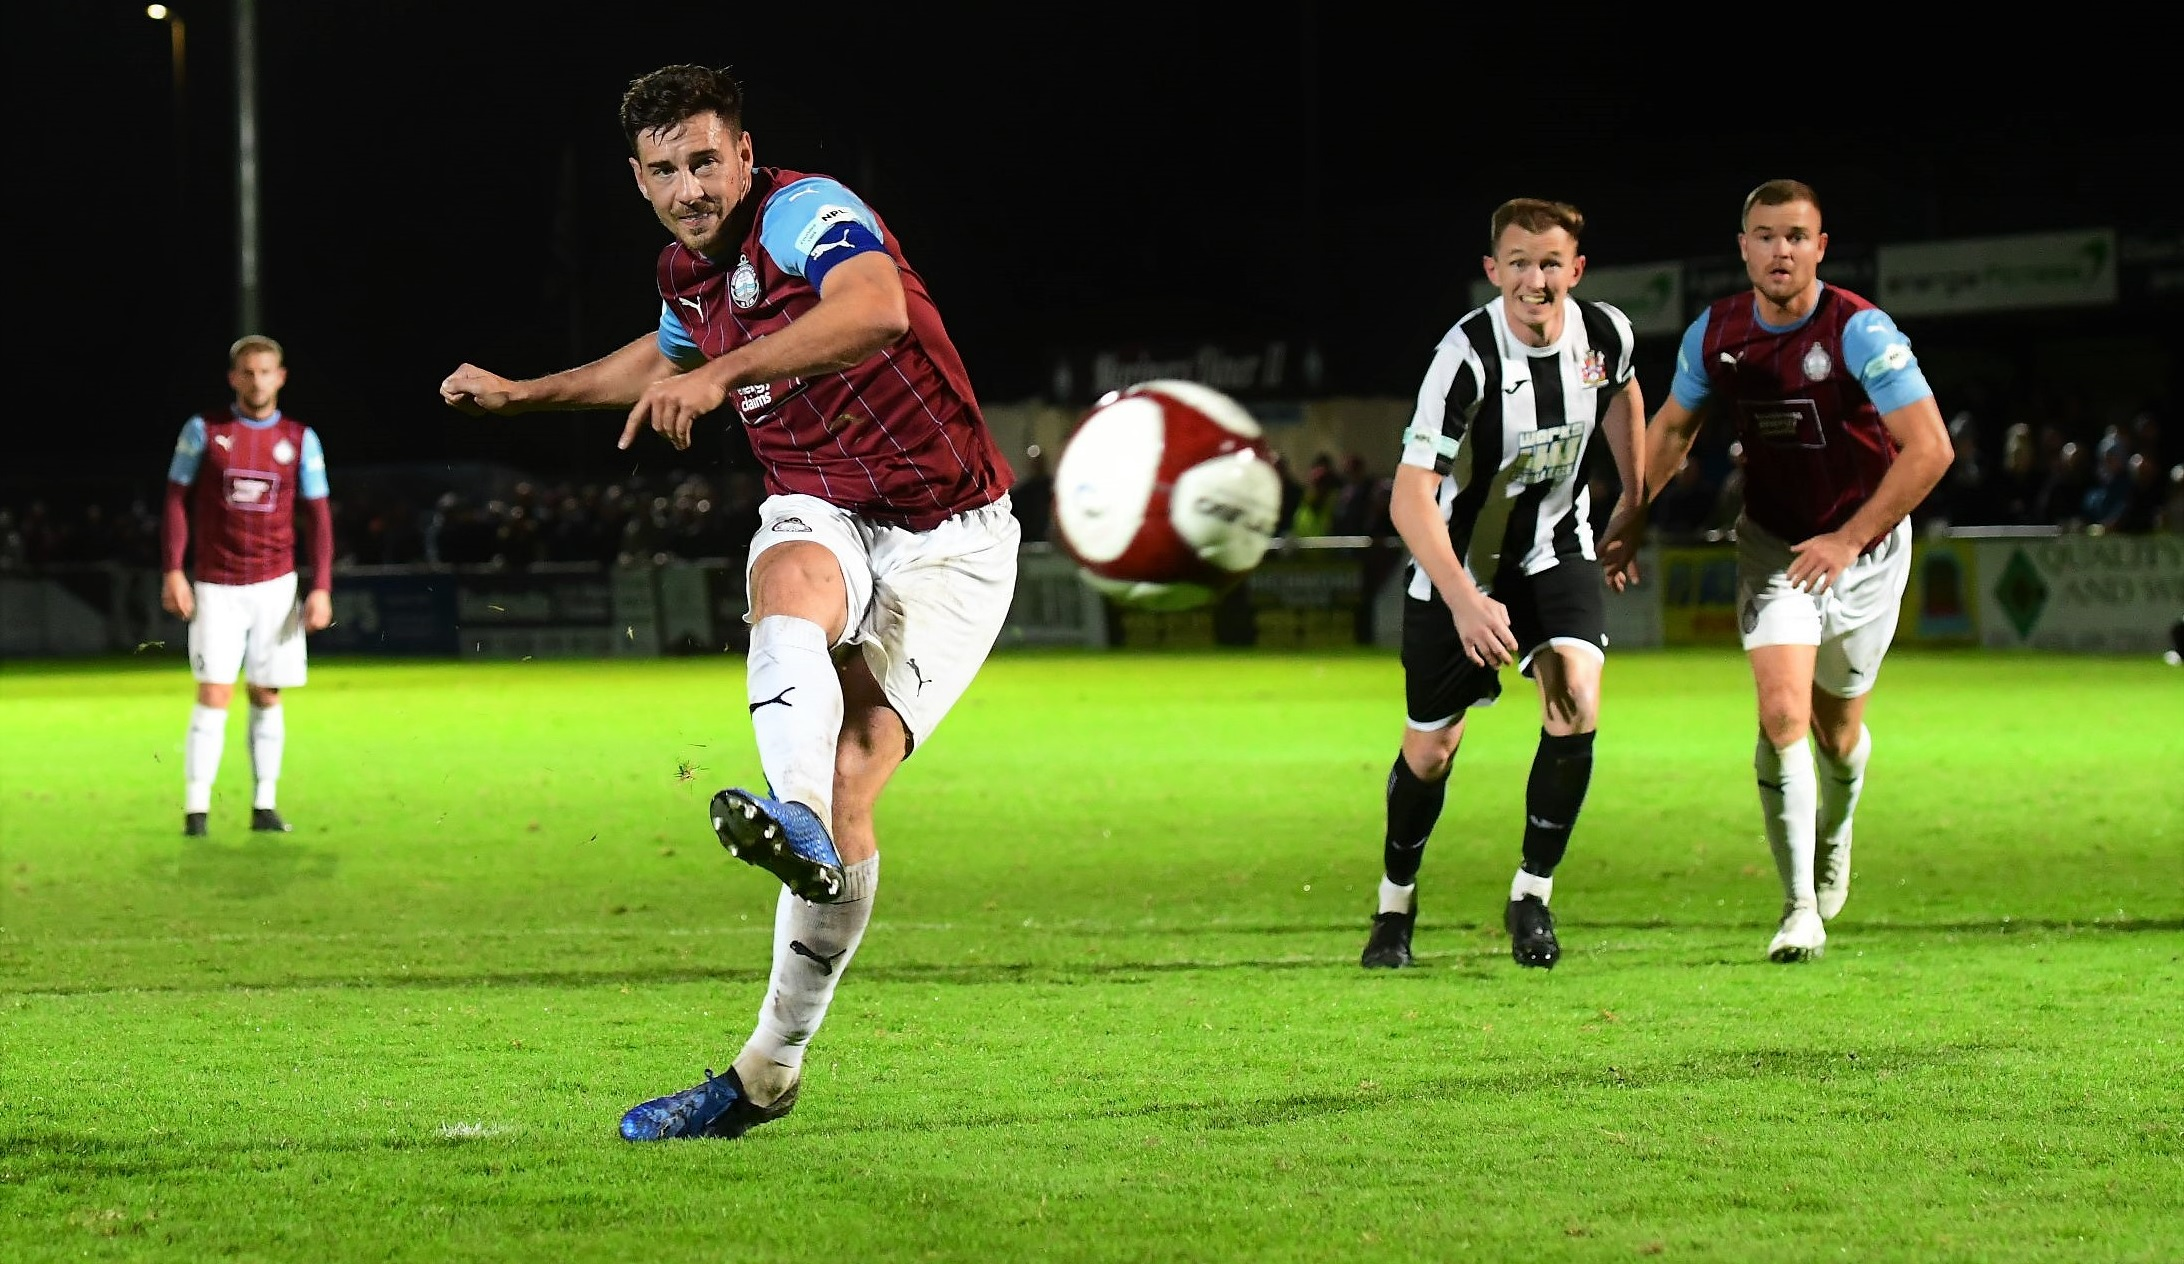 South Shields 2-1 Stalybridge Celtic: Stoppage time winner continues winning run